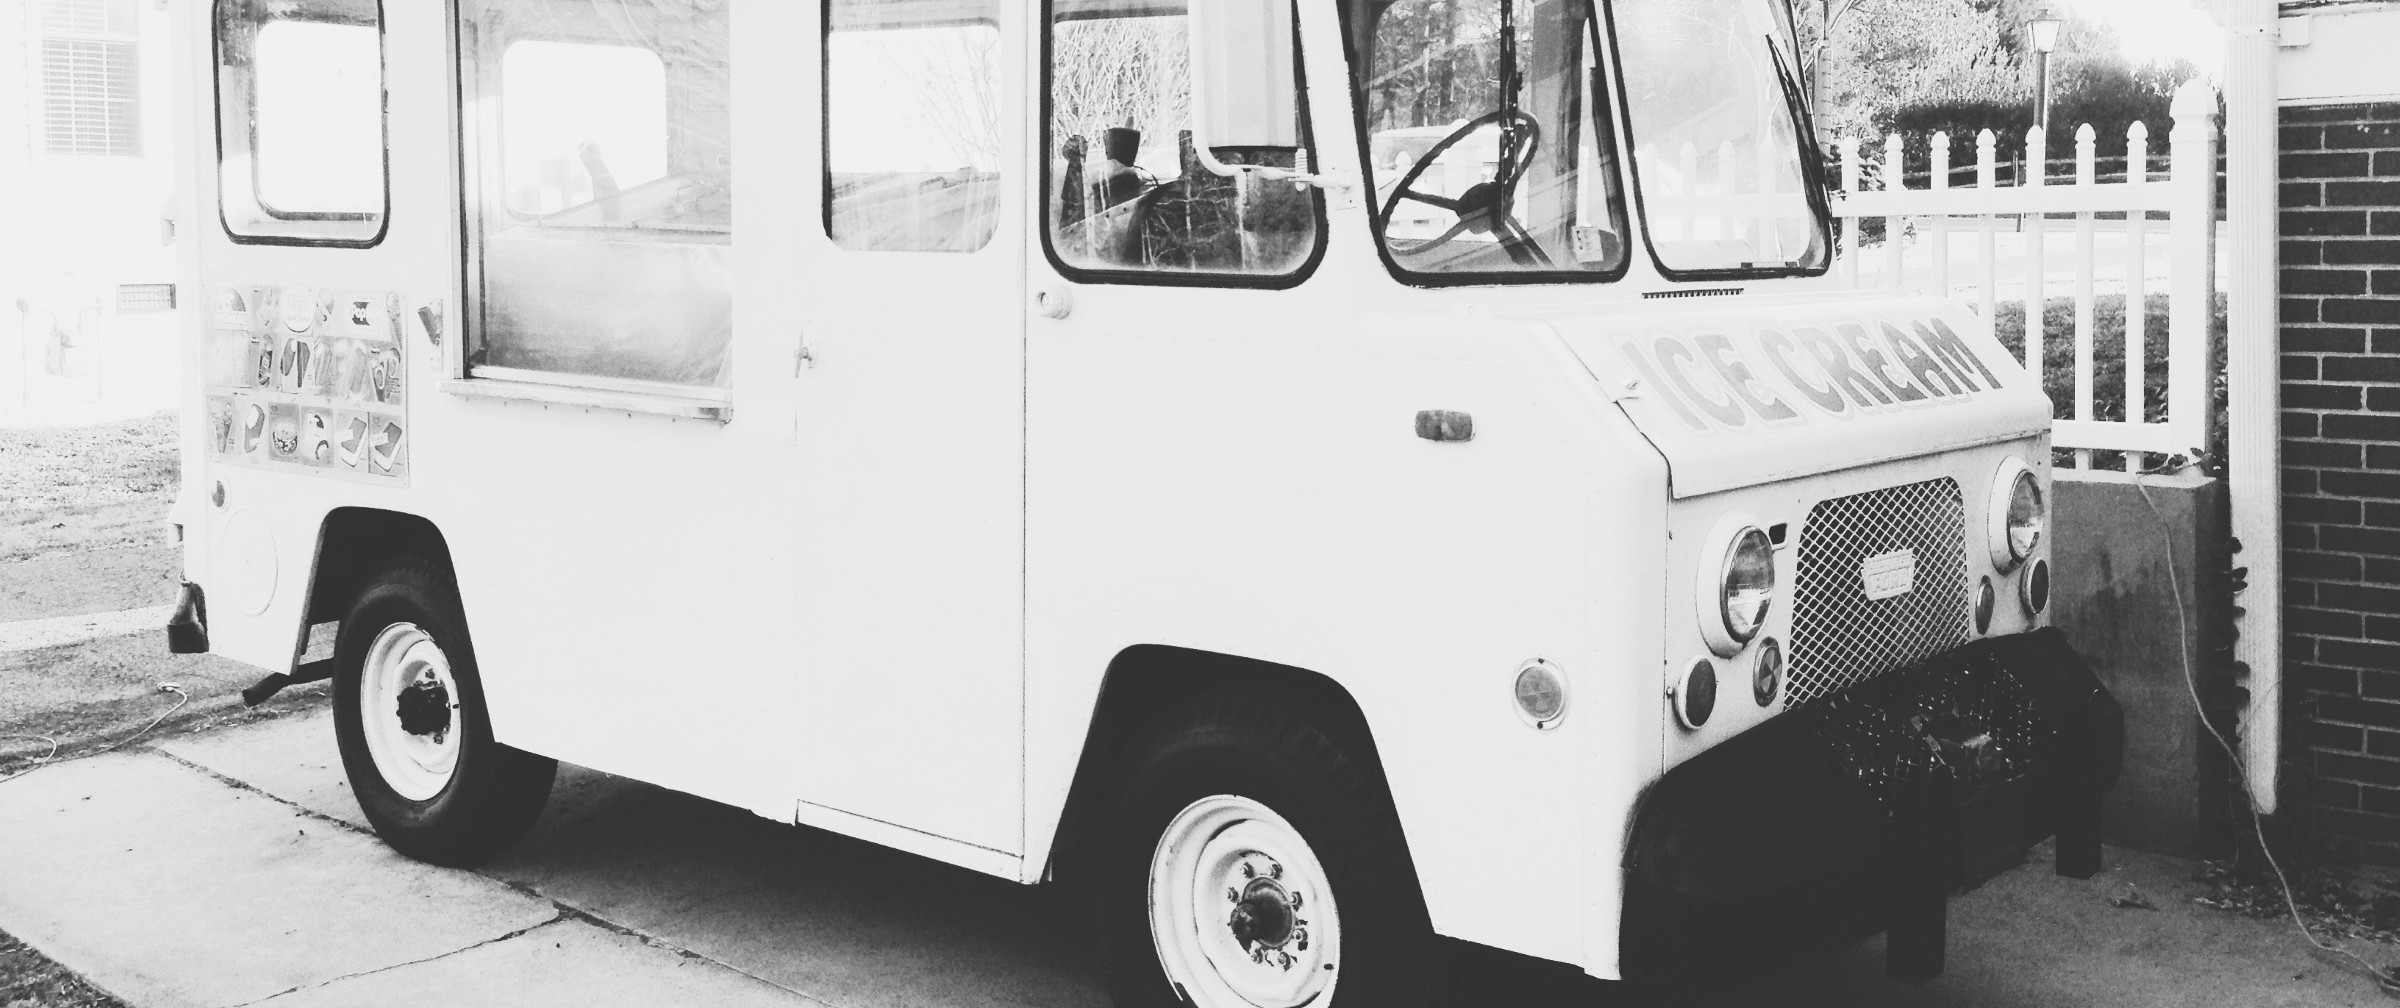 How to Buy an Ice Cream Truck – Chris – Medium